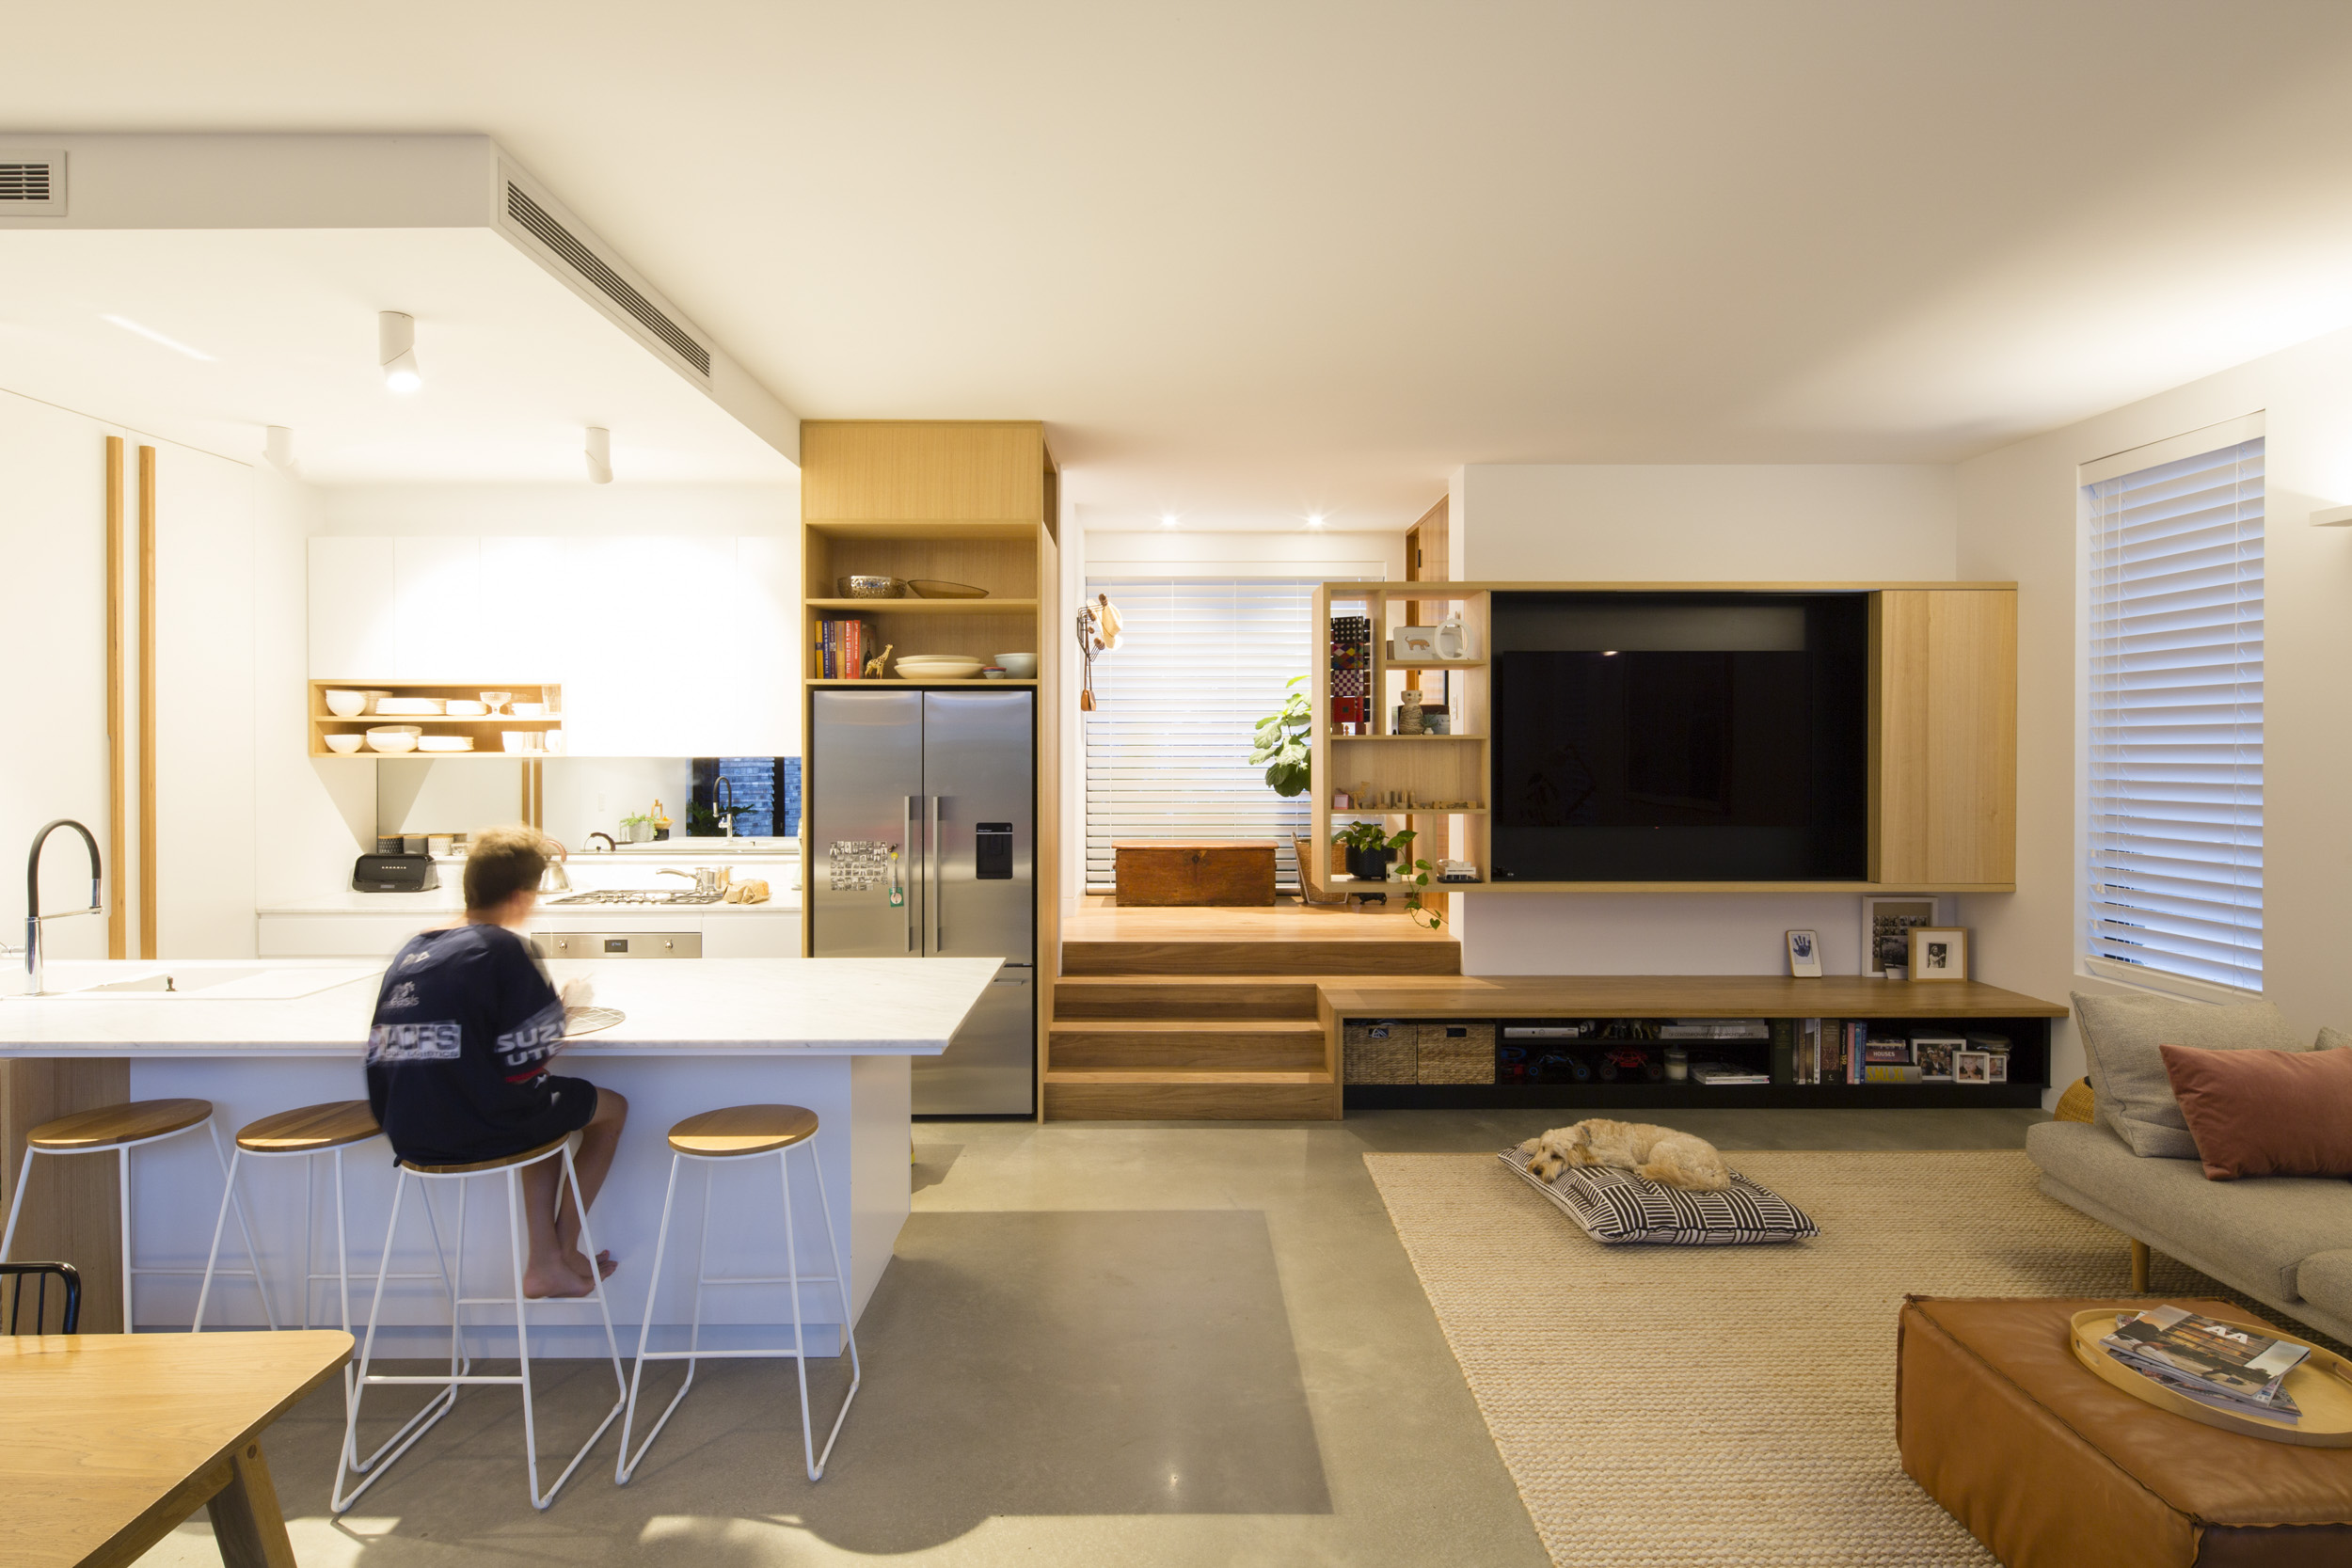 residential_architects_sq_projects_sydney_02.jpg